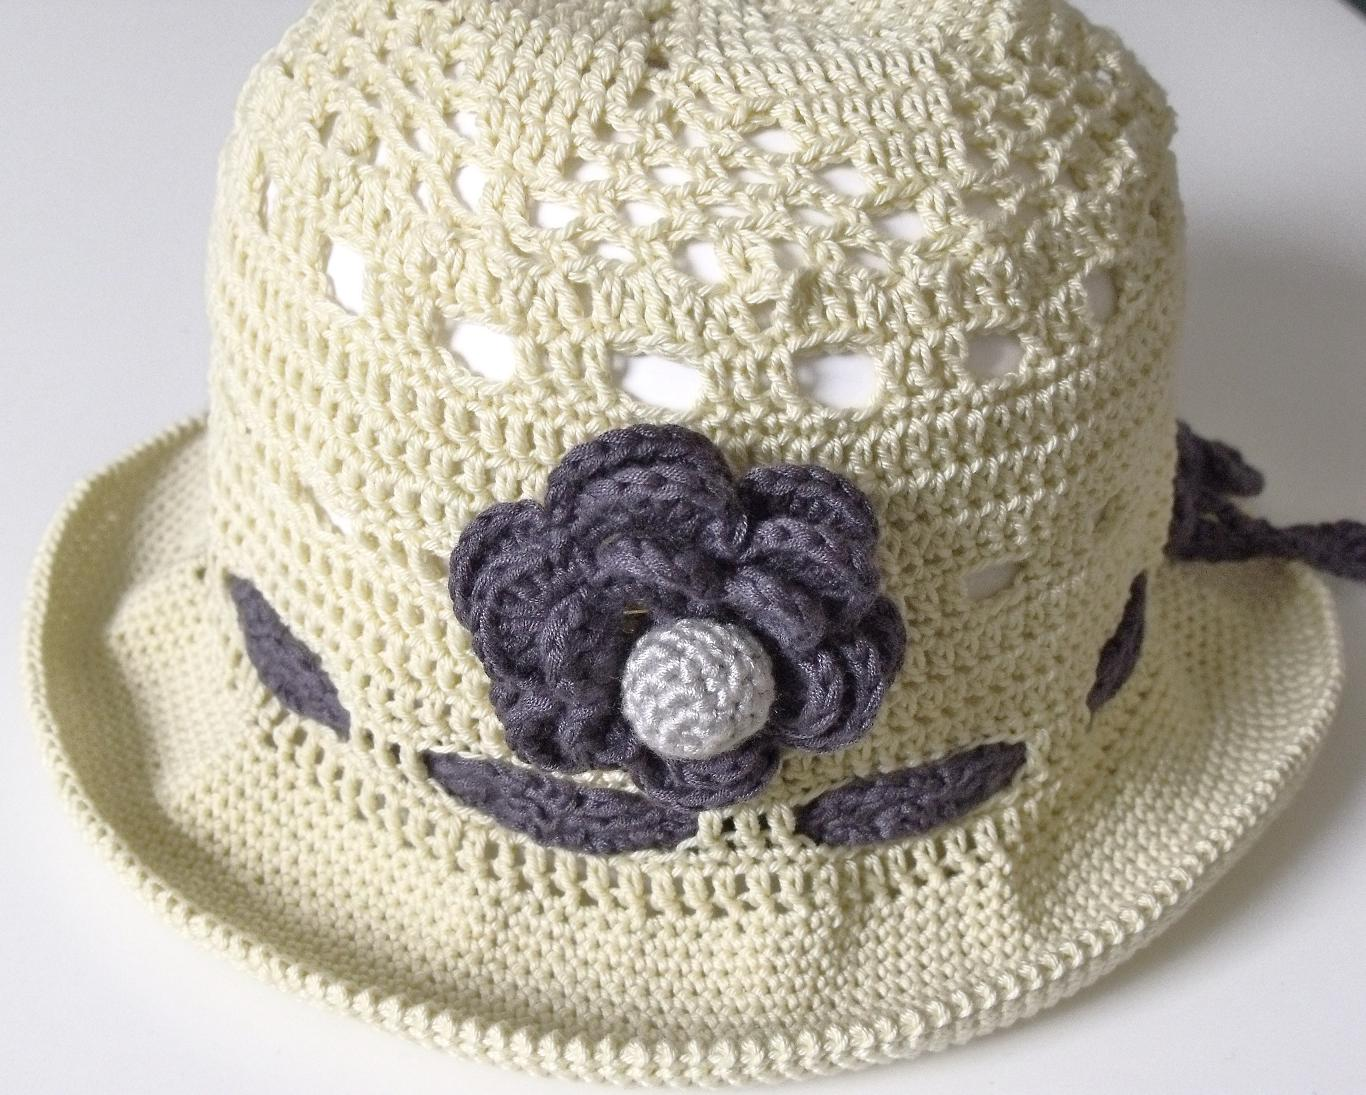 MICROCKNIT CREATIONS: SPRING Sun Hats!